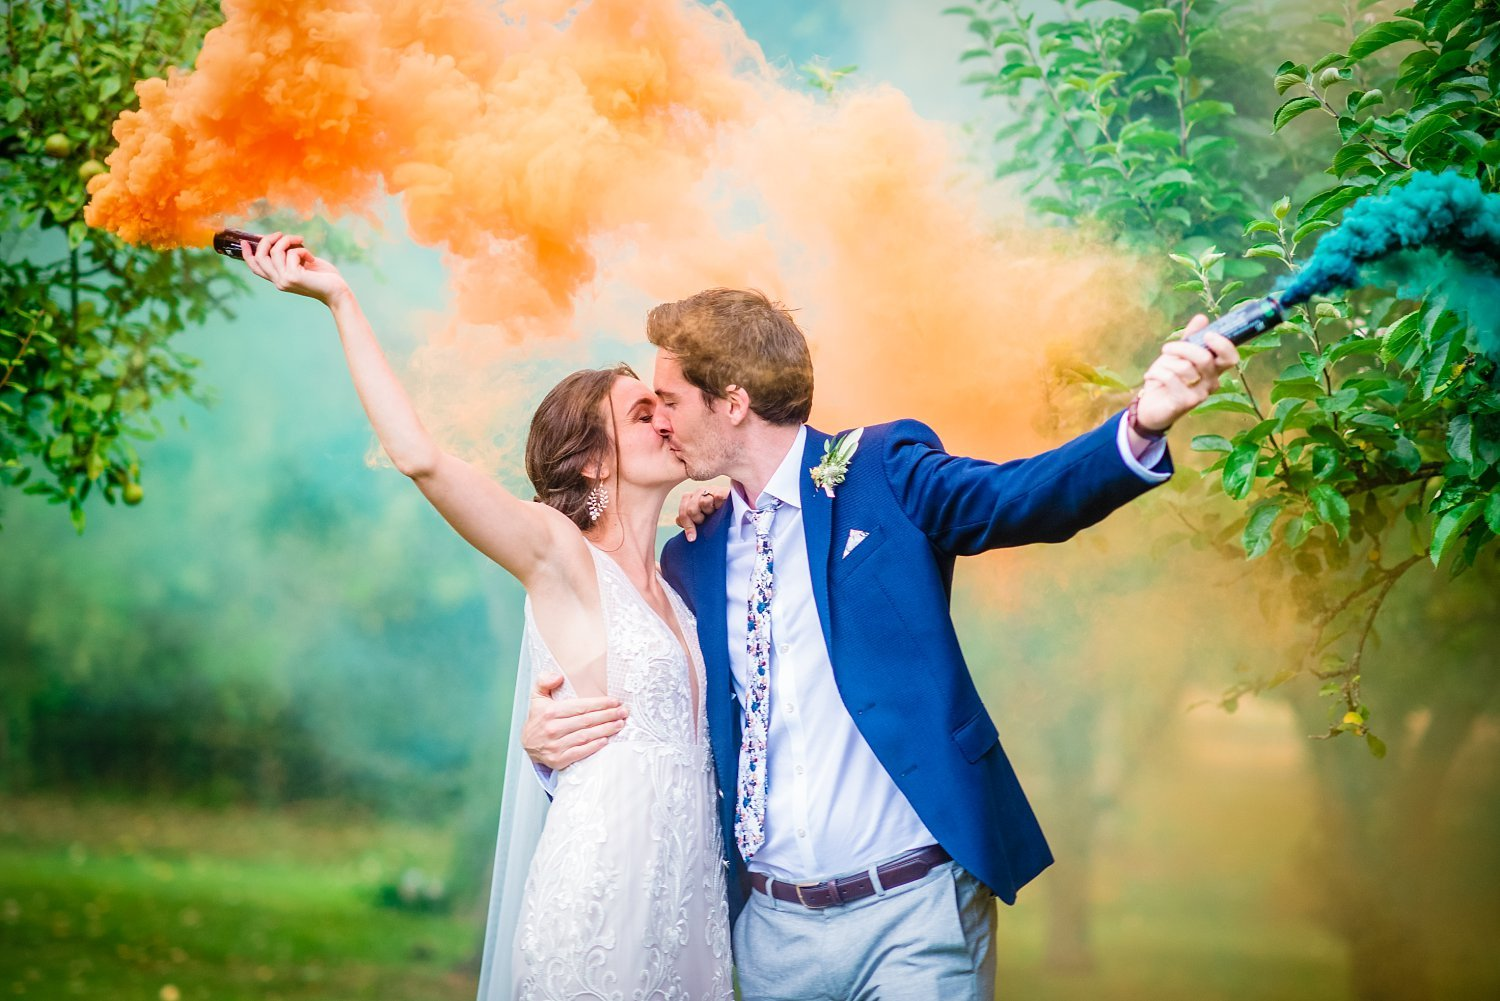 Colville Hall Weding Photographer - bride and groom are having a kiss. they are holding an orange and blue smoke bomb